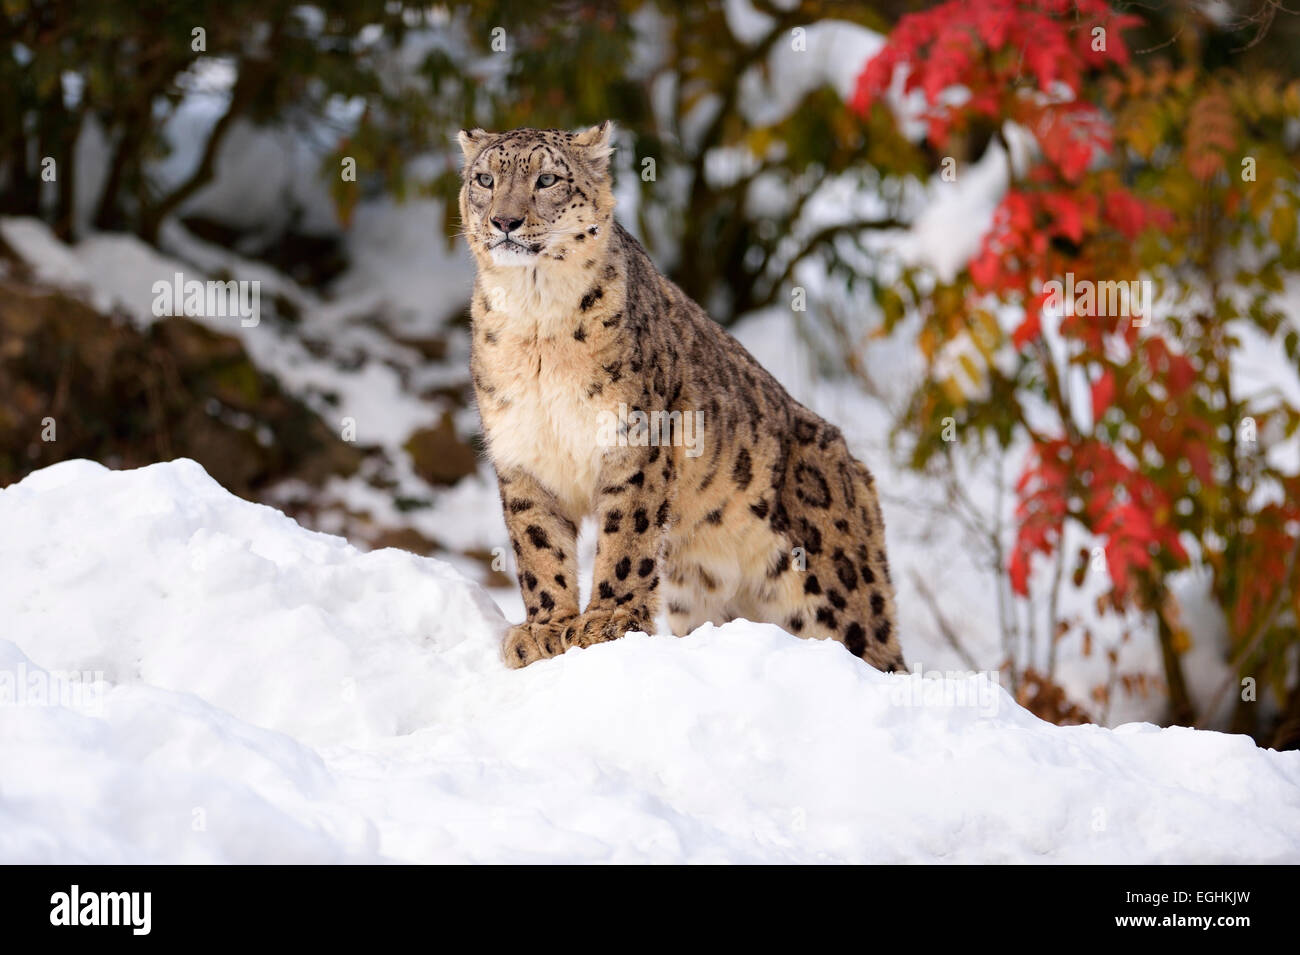 Snow Leopard (Panthera uncia), male, in the snow, captive, Switzerland - Stock Image